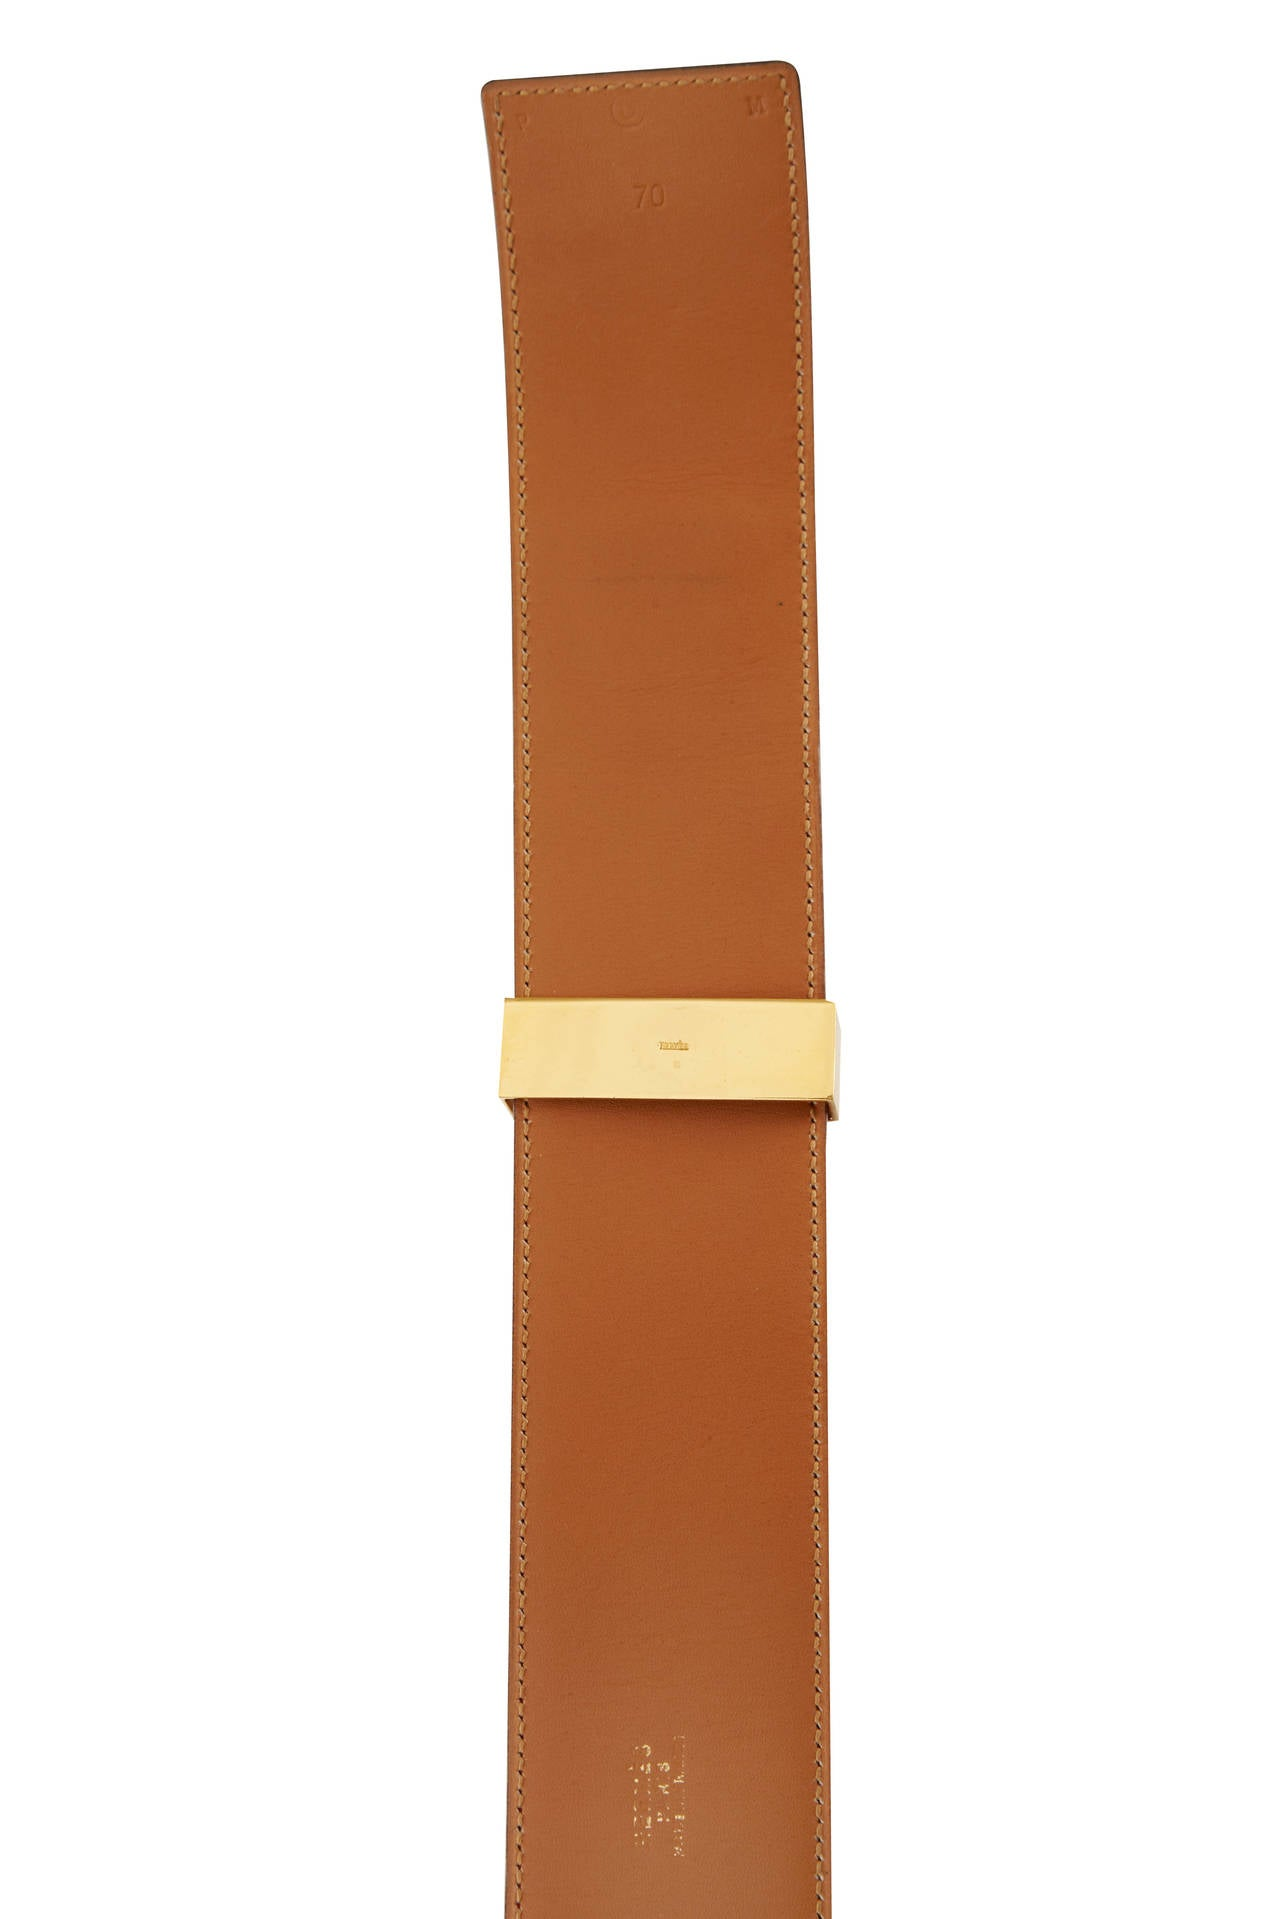 1980s Red Hermès Collier de Chien Leather Belt Size 70 In Excellent Condition For Sale In London, GB